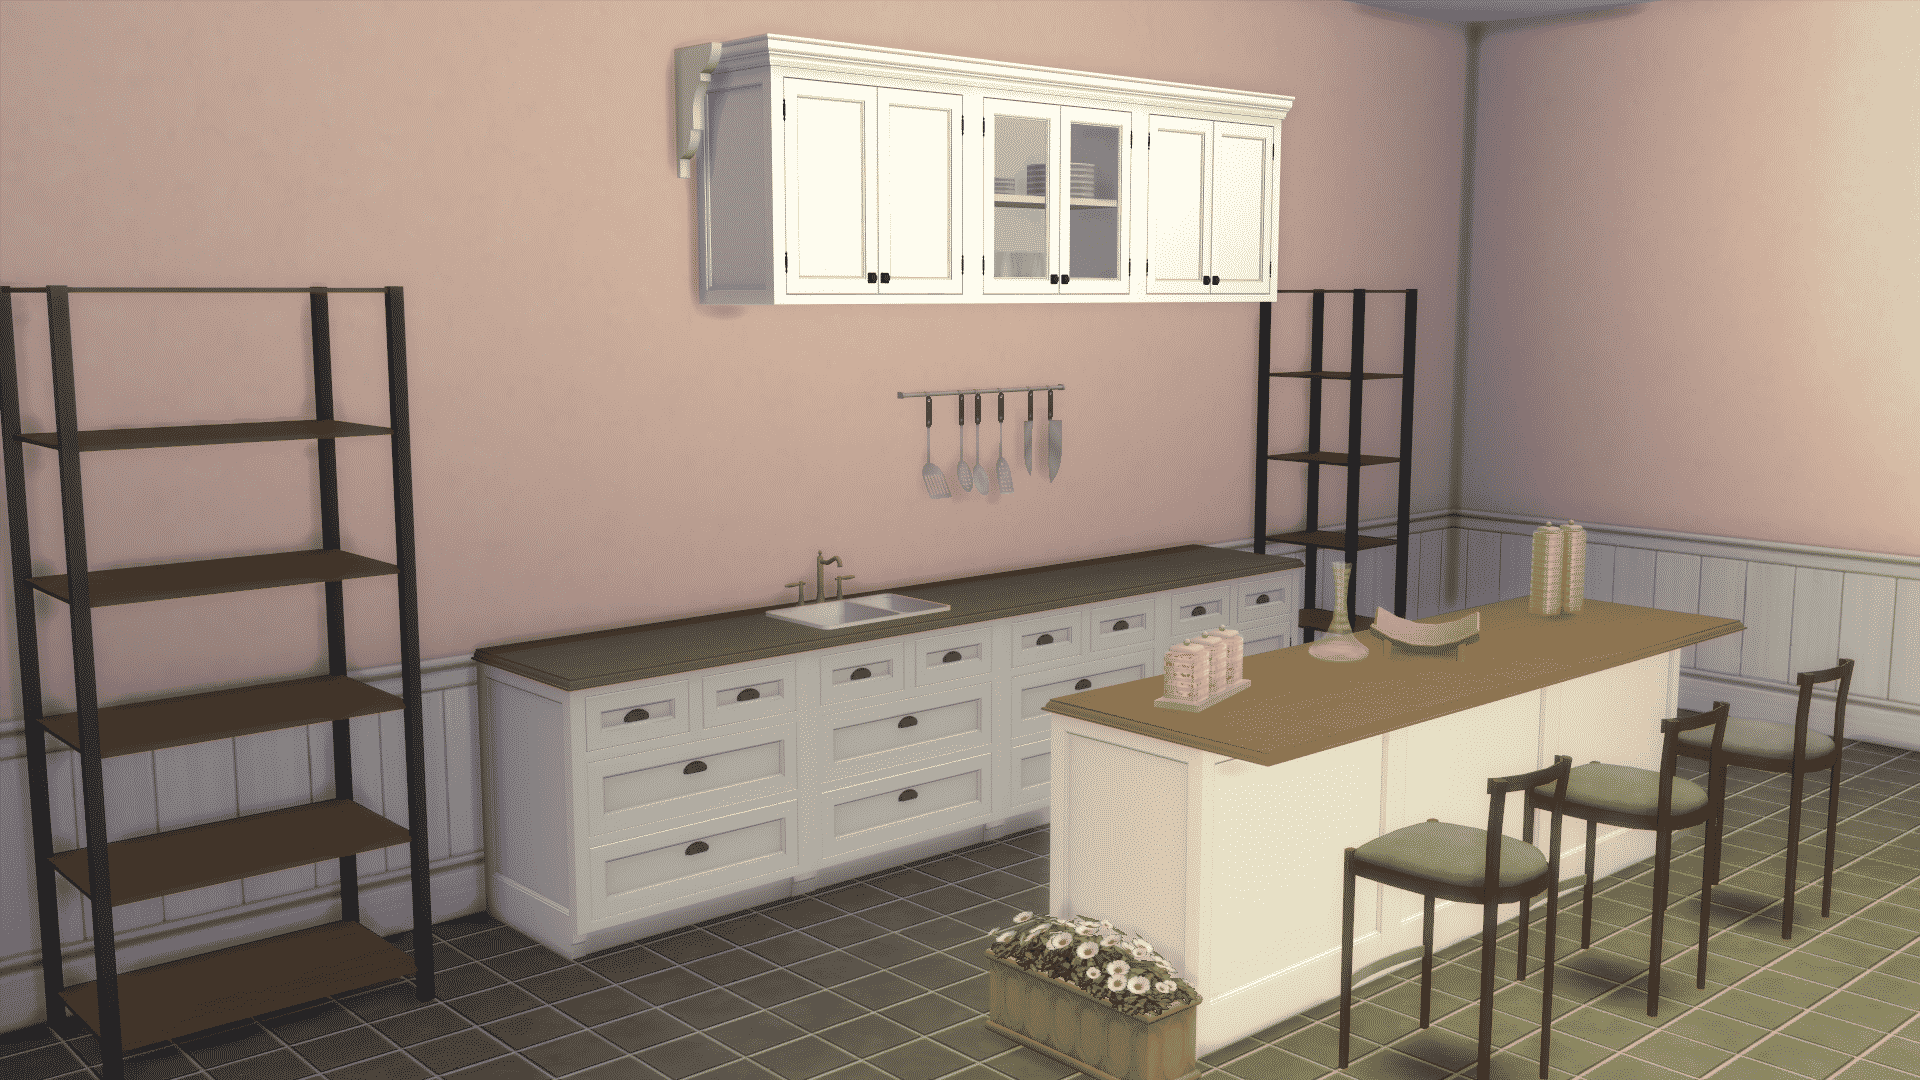 Sims Kitchen The Sims 4 Custom Content Spotlight Kitchen Sets Sims Community